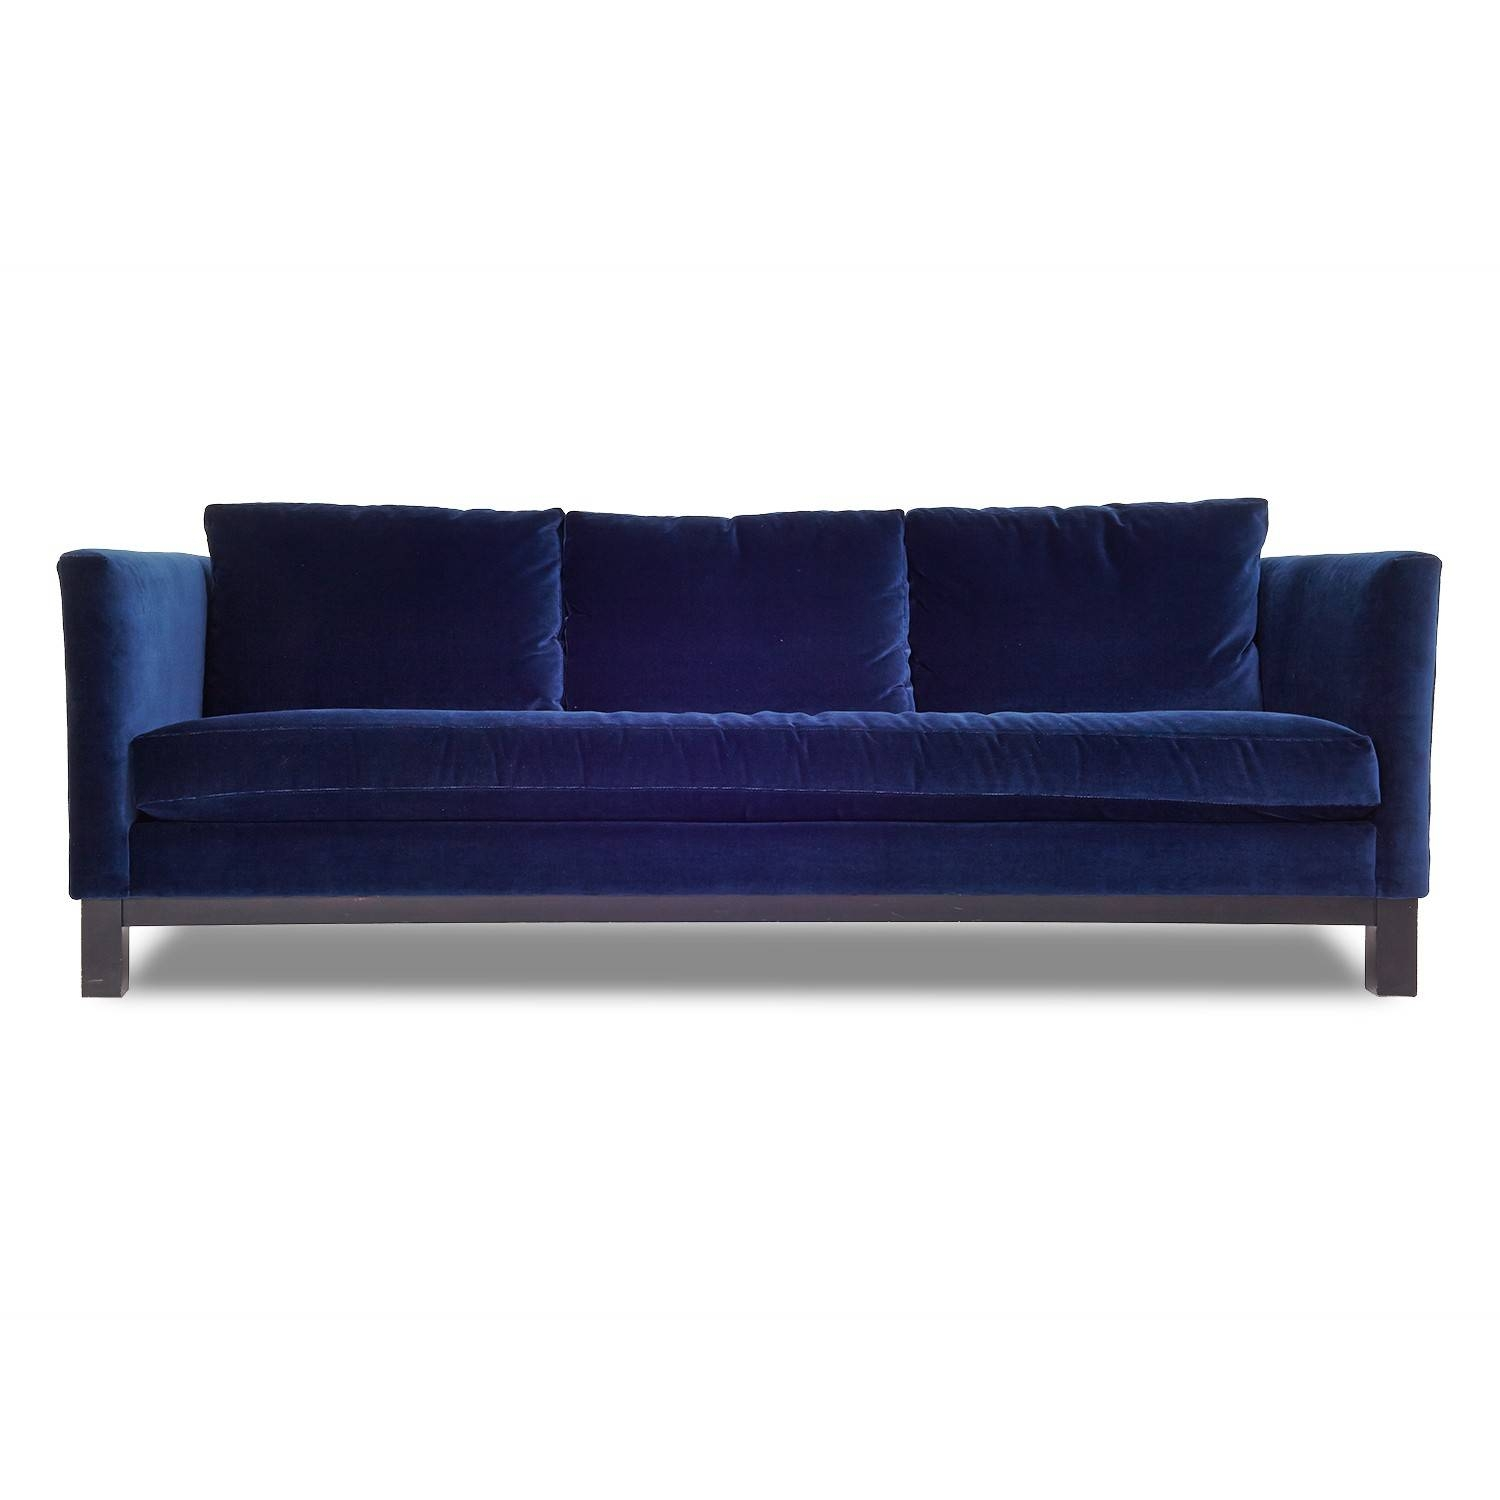 Cobble Hill Sofa 67 With Cobble Hill Sofa | Jinanhongyu Throughout Cobble Hill Sofas (View 11 of 15)